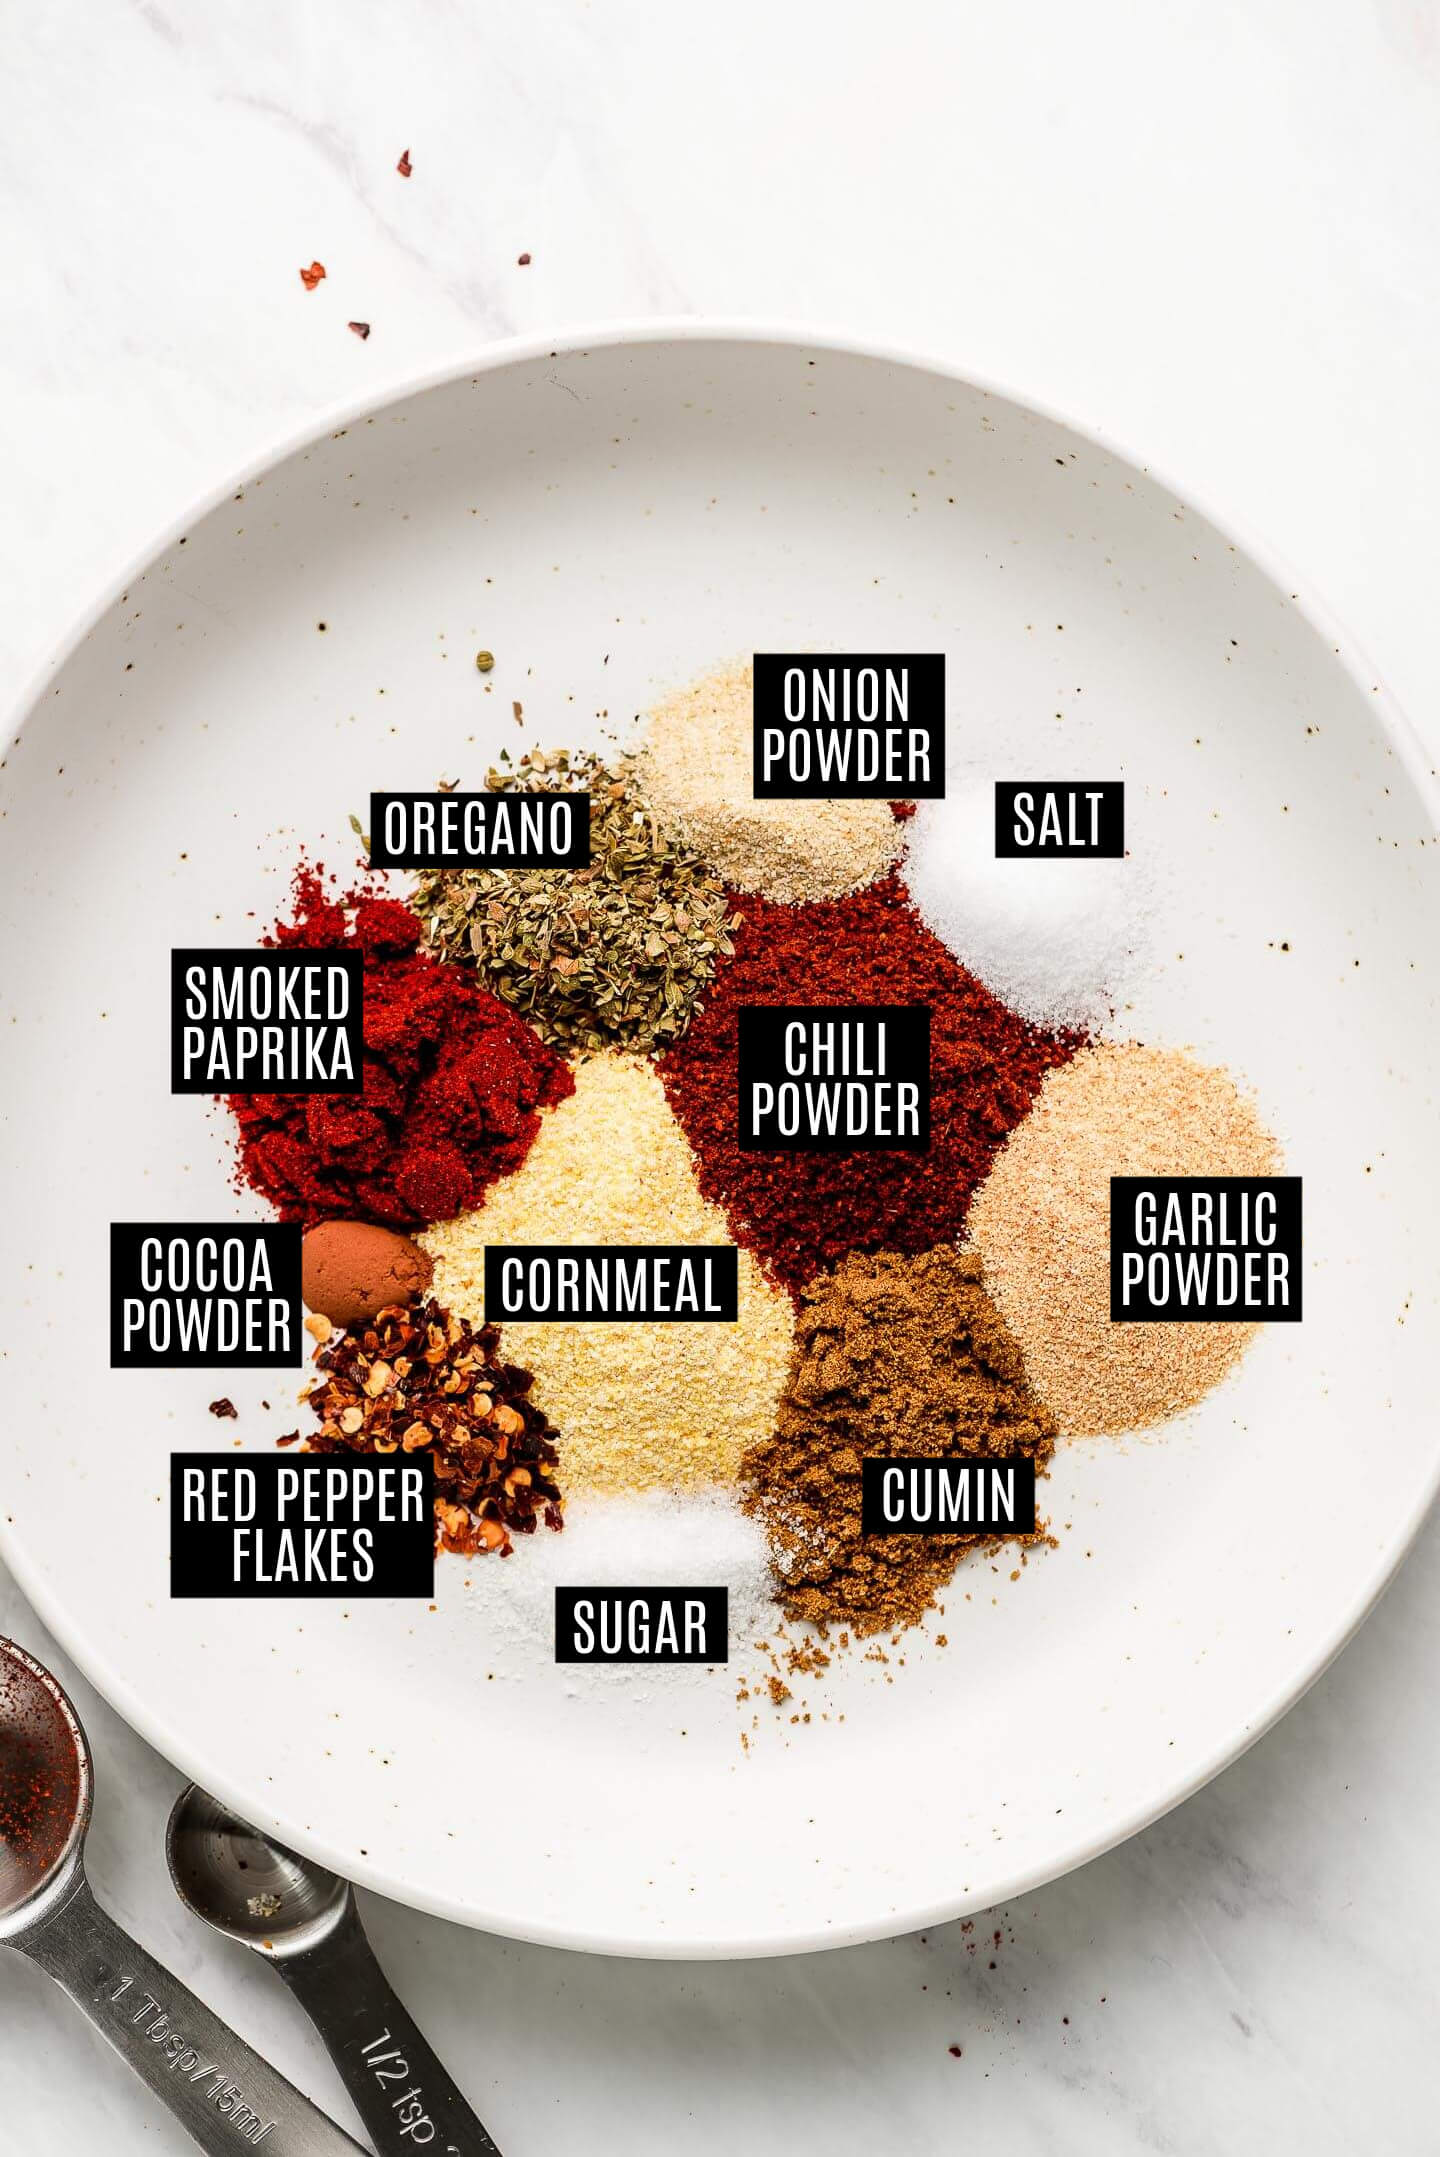 Various spices in a shallow white bowl for Taco Seasoning.